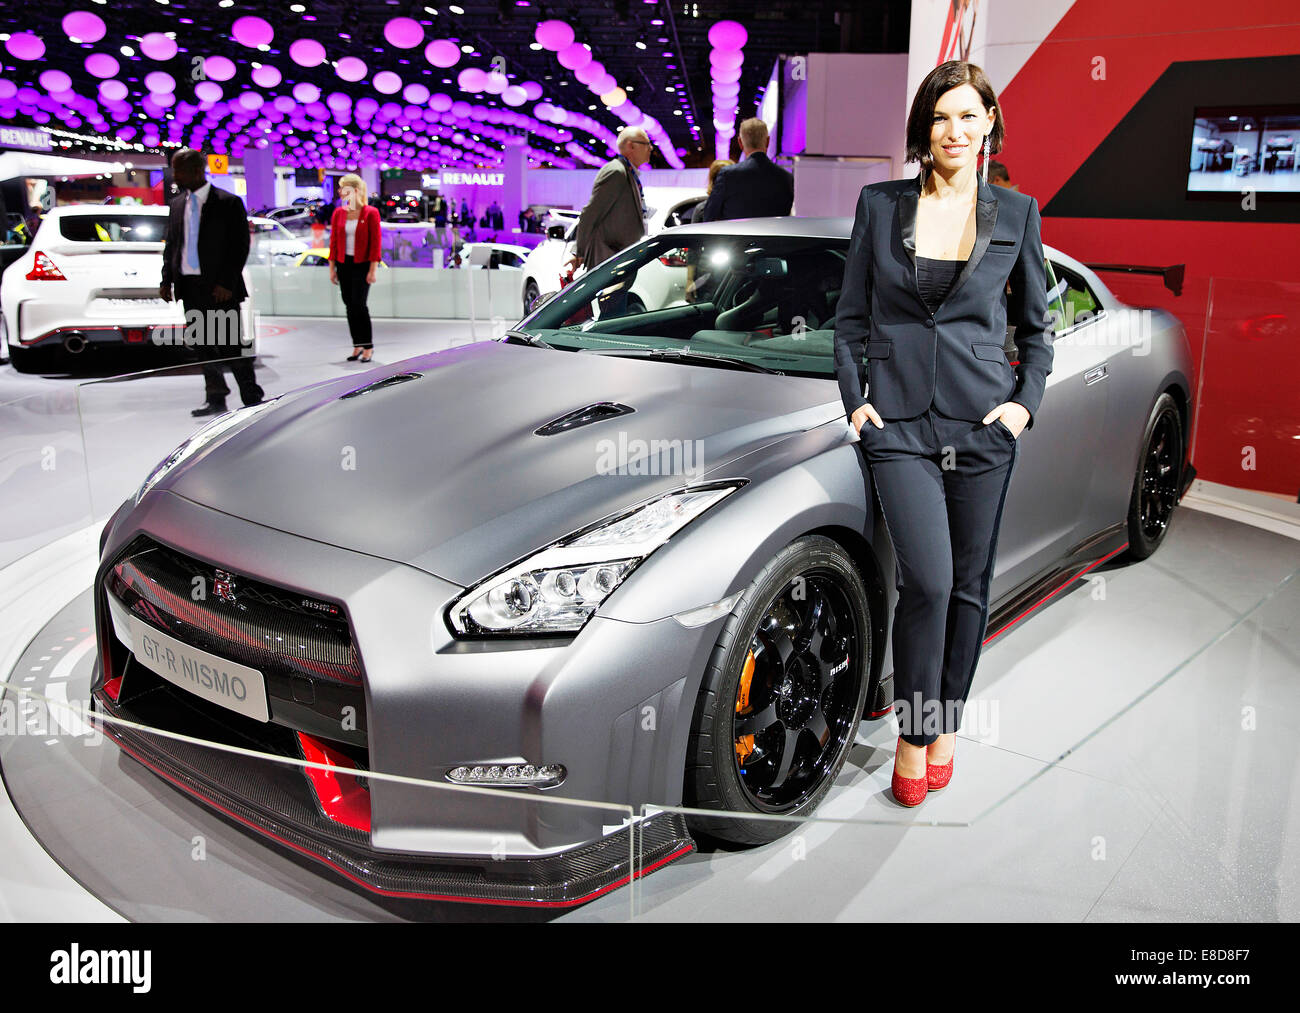 Concept Car Nissan GT R Nismo Was Presented During The International Motor  Show In Paris